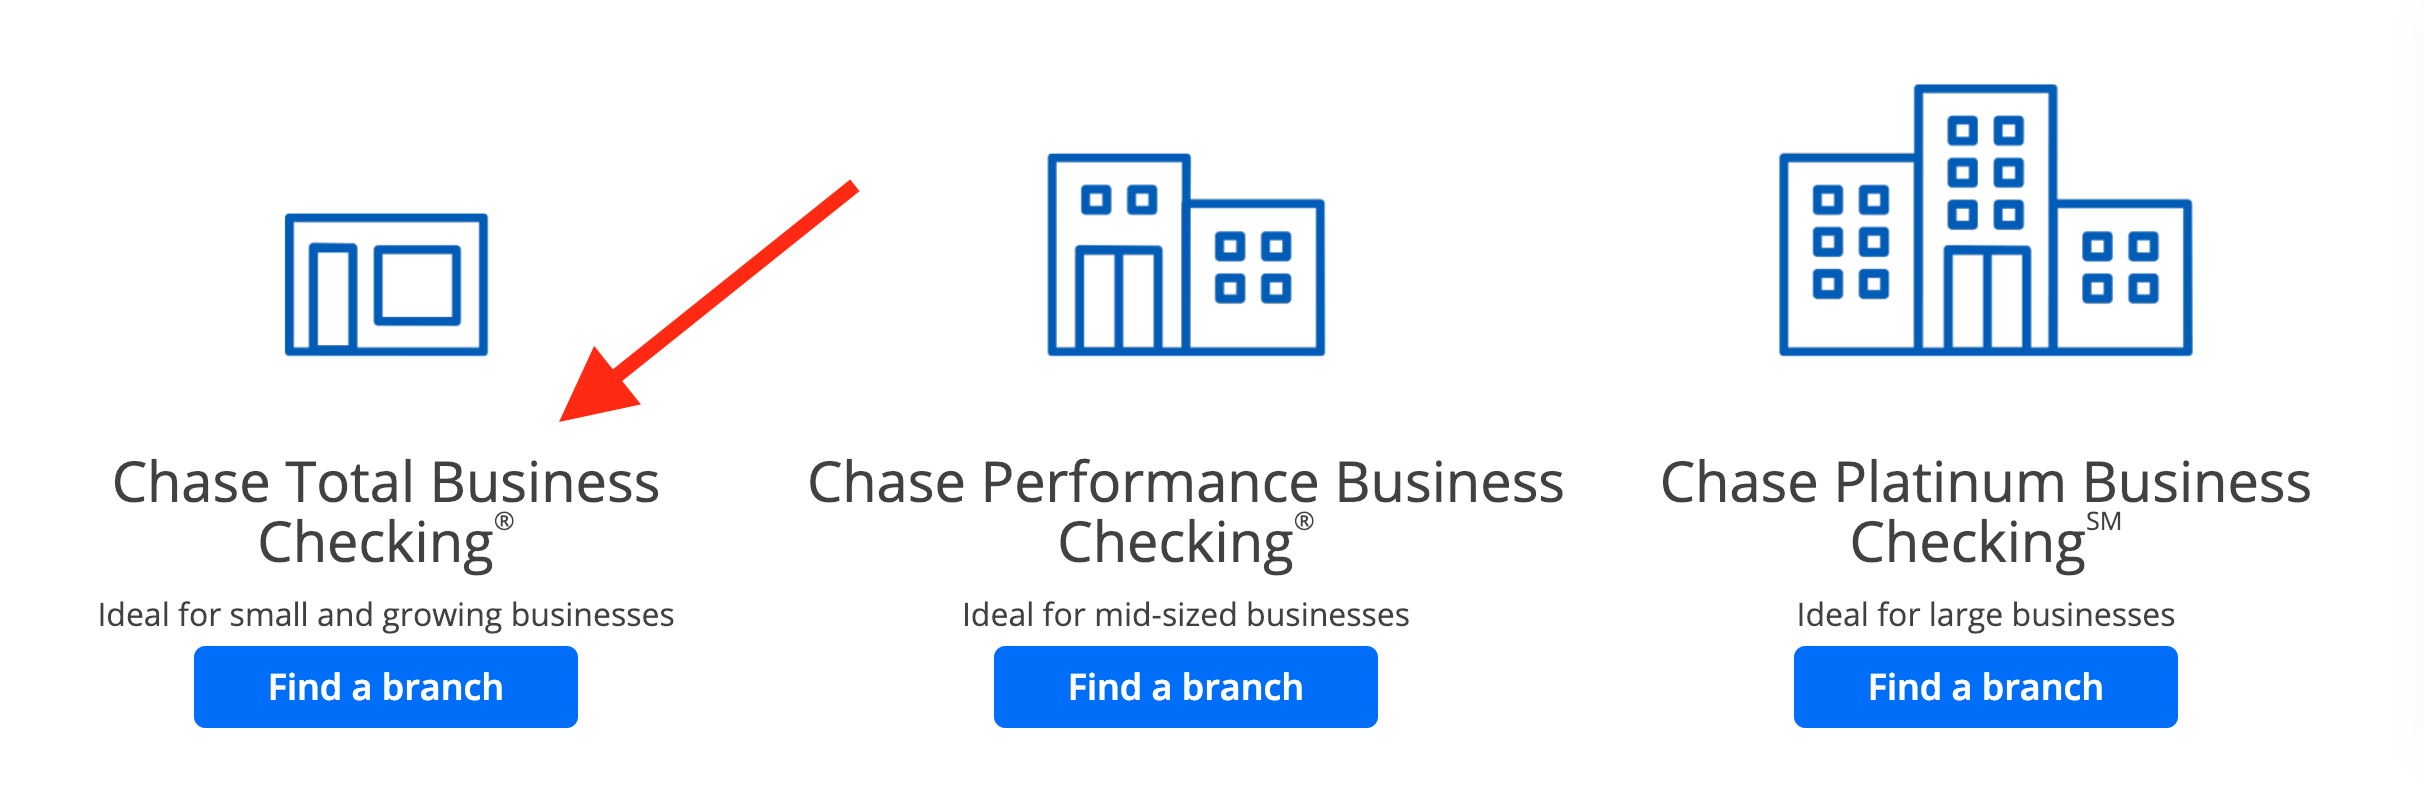 Chase Total Business Checking Accounts [2019 Update]